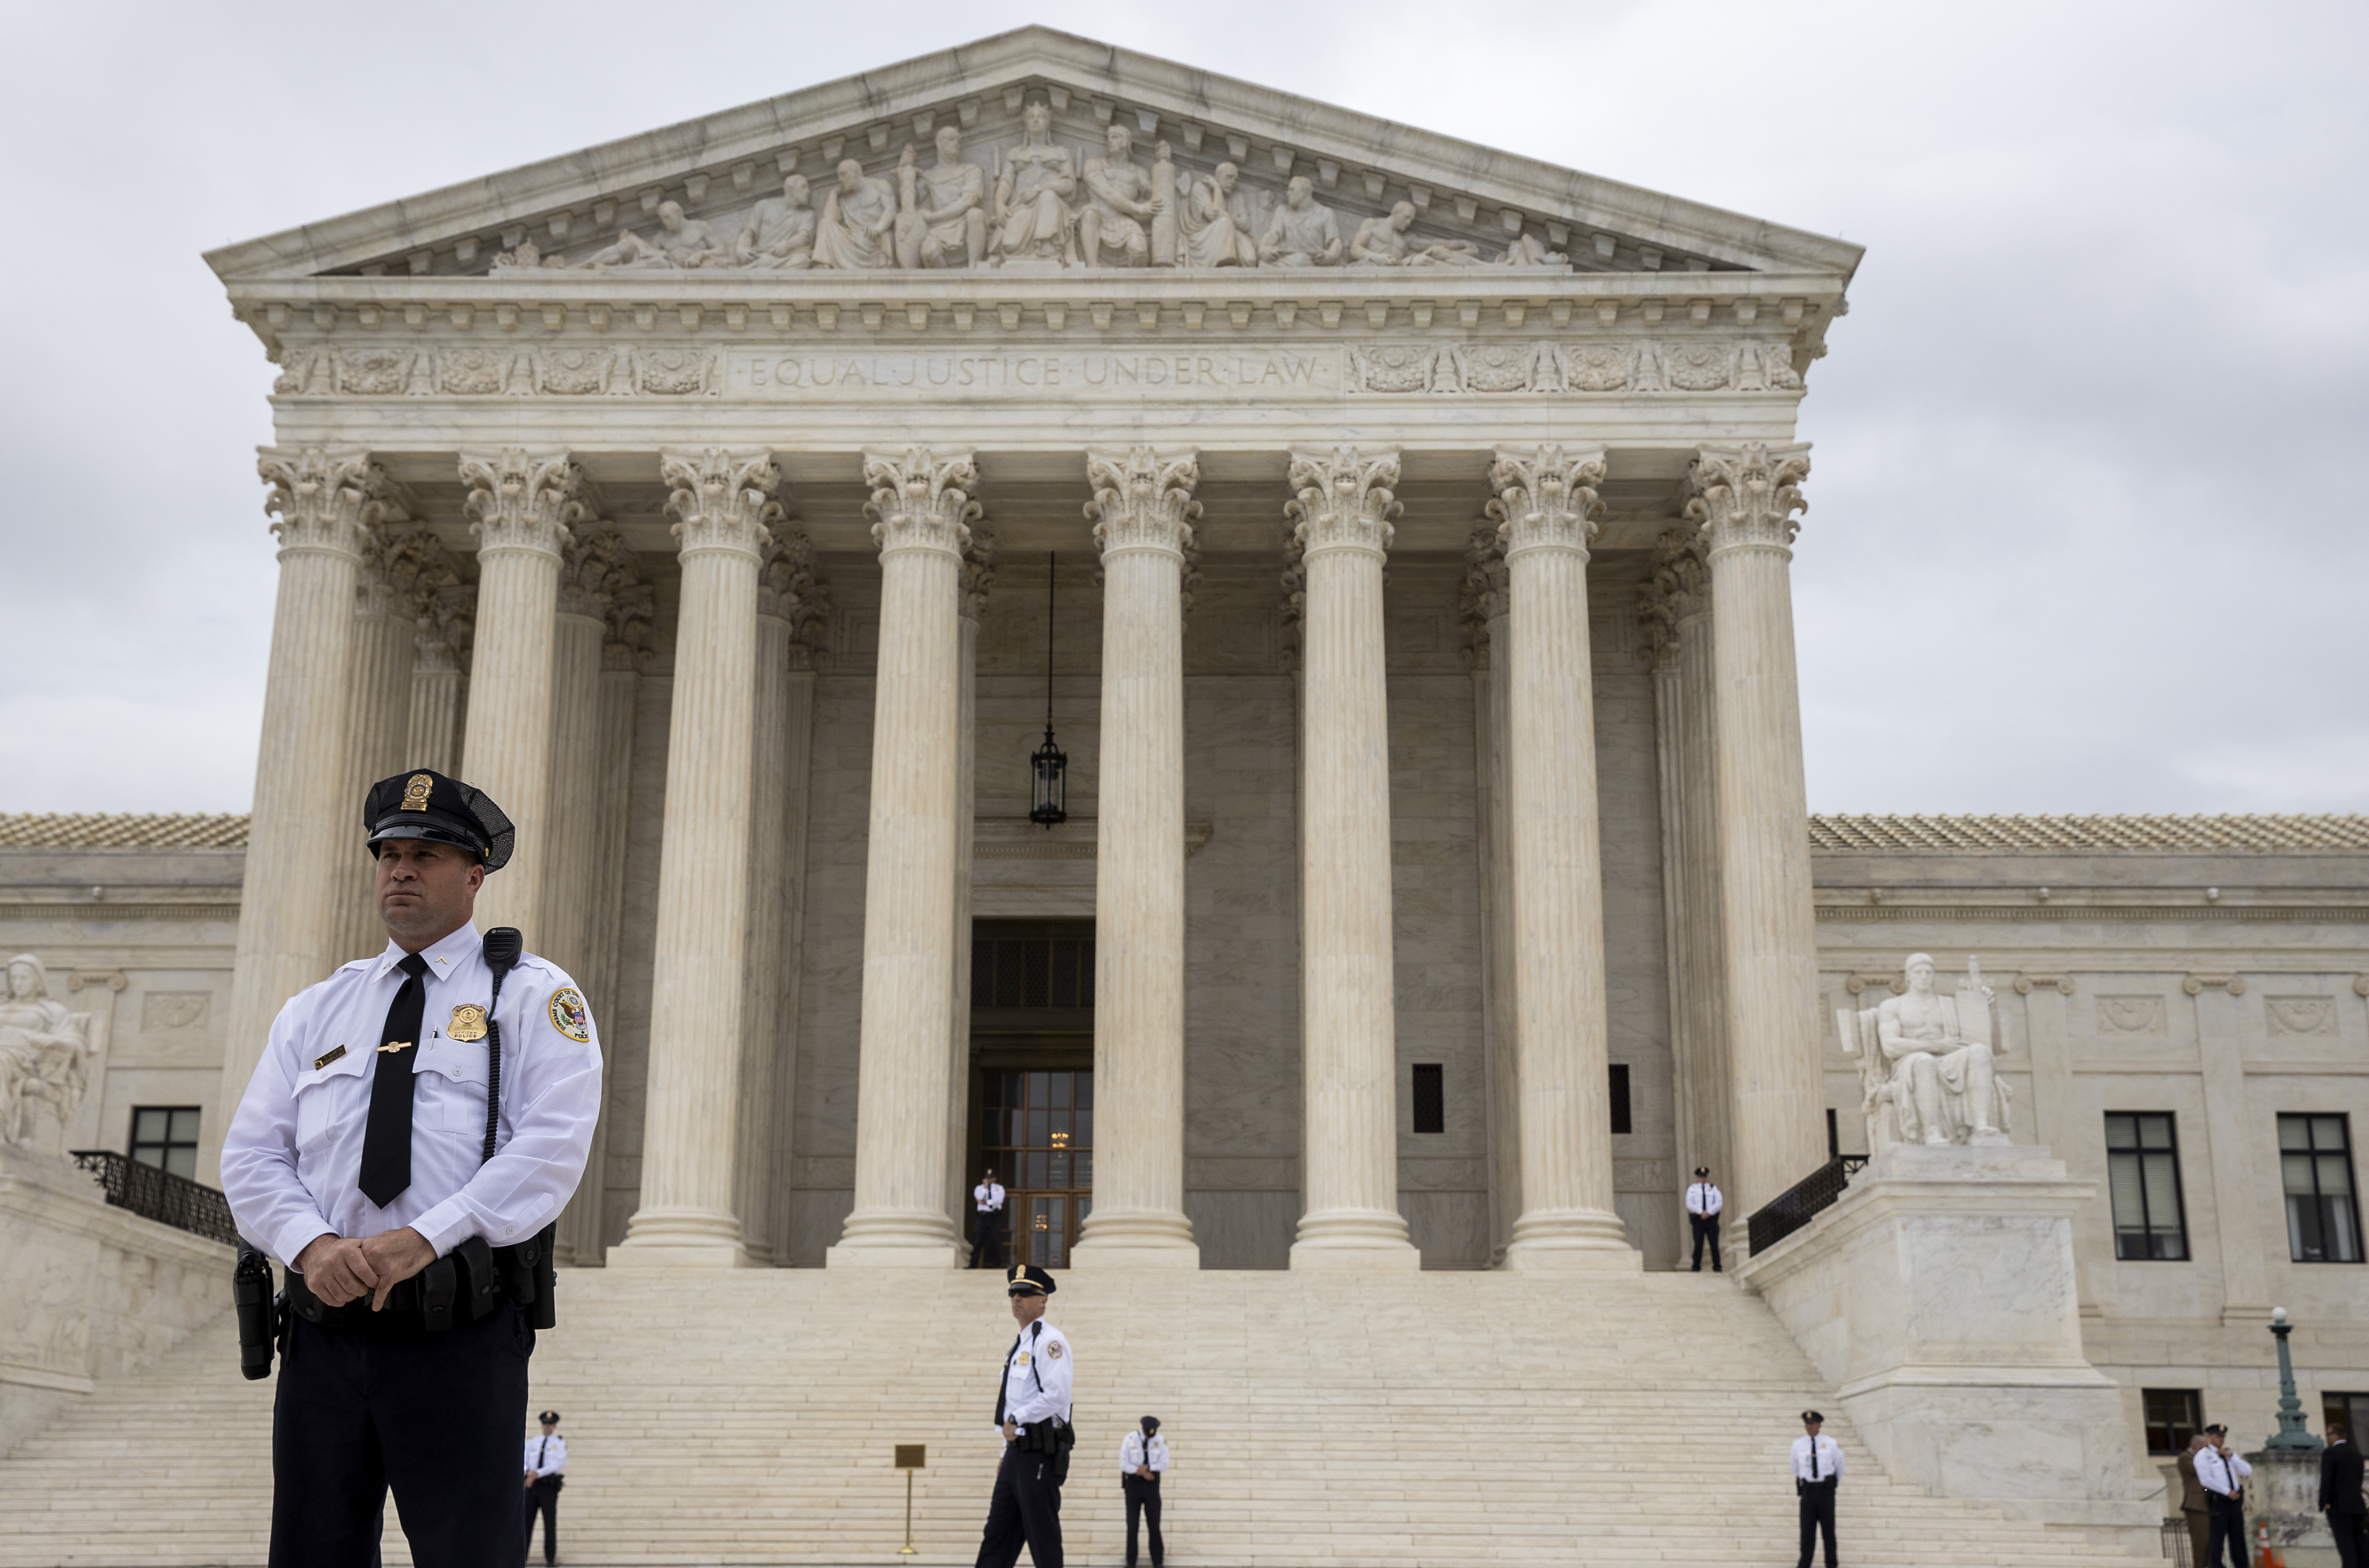 The Supreme Court as it hears arguments on gender identity and workplace discrimination on October 08, 2019. (Tasos Katopodis/Getty Images)